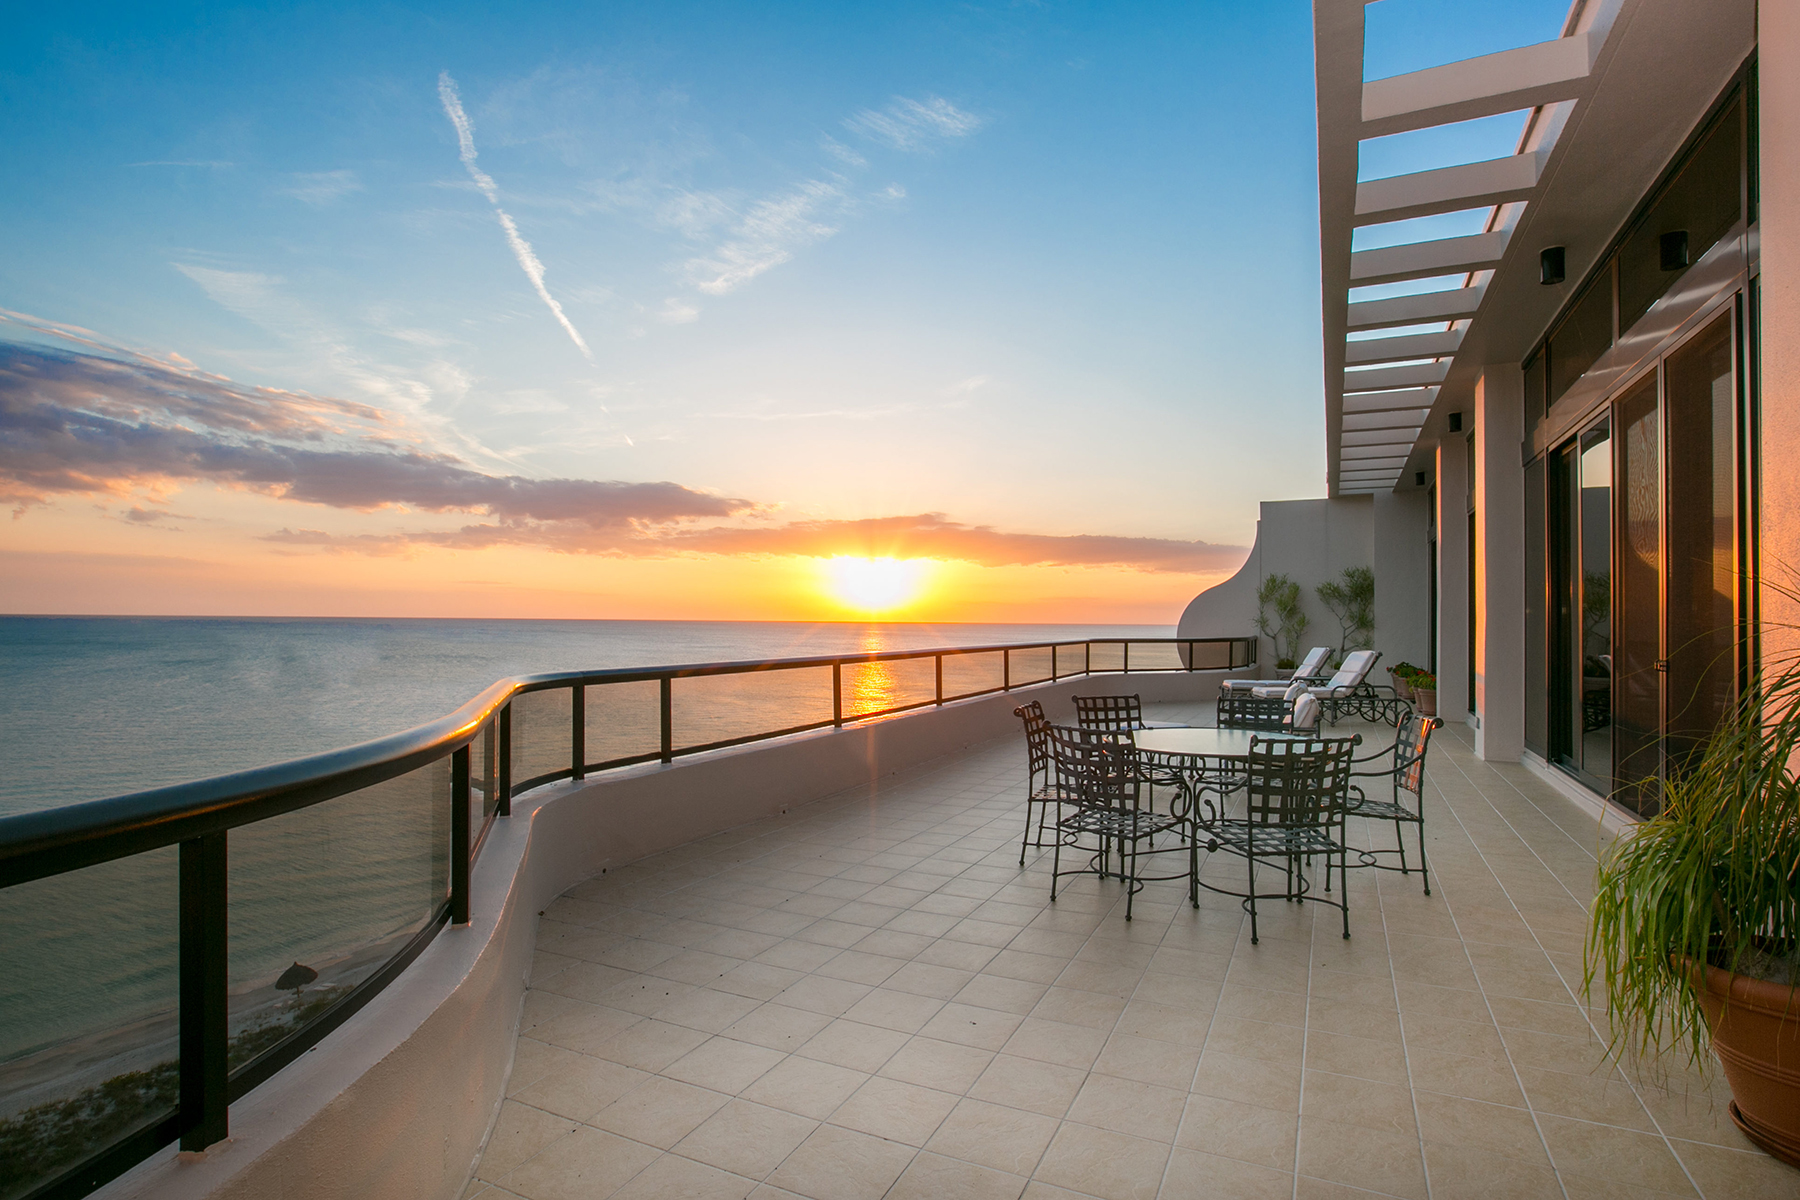 Condominium for Sale at LONGBOAT KEY 415 L Ambiance Dr PH-C Longboat Key, Florida, 34228 United States